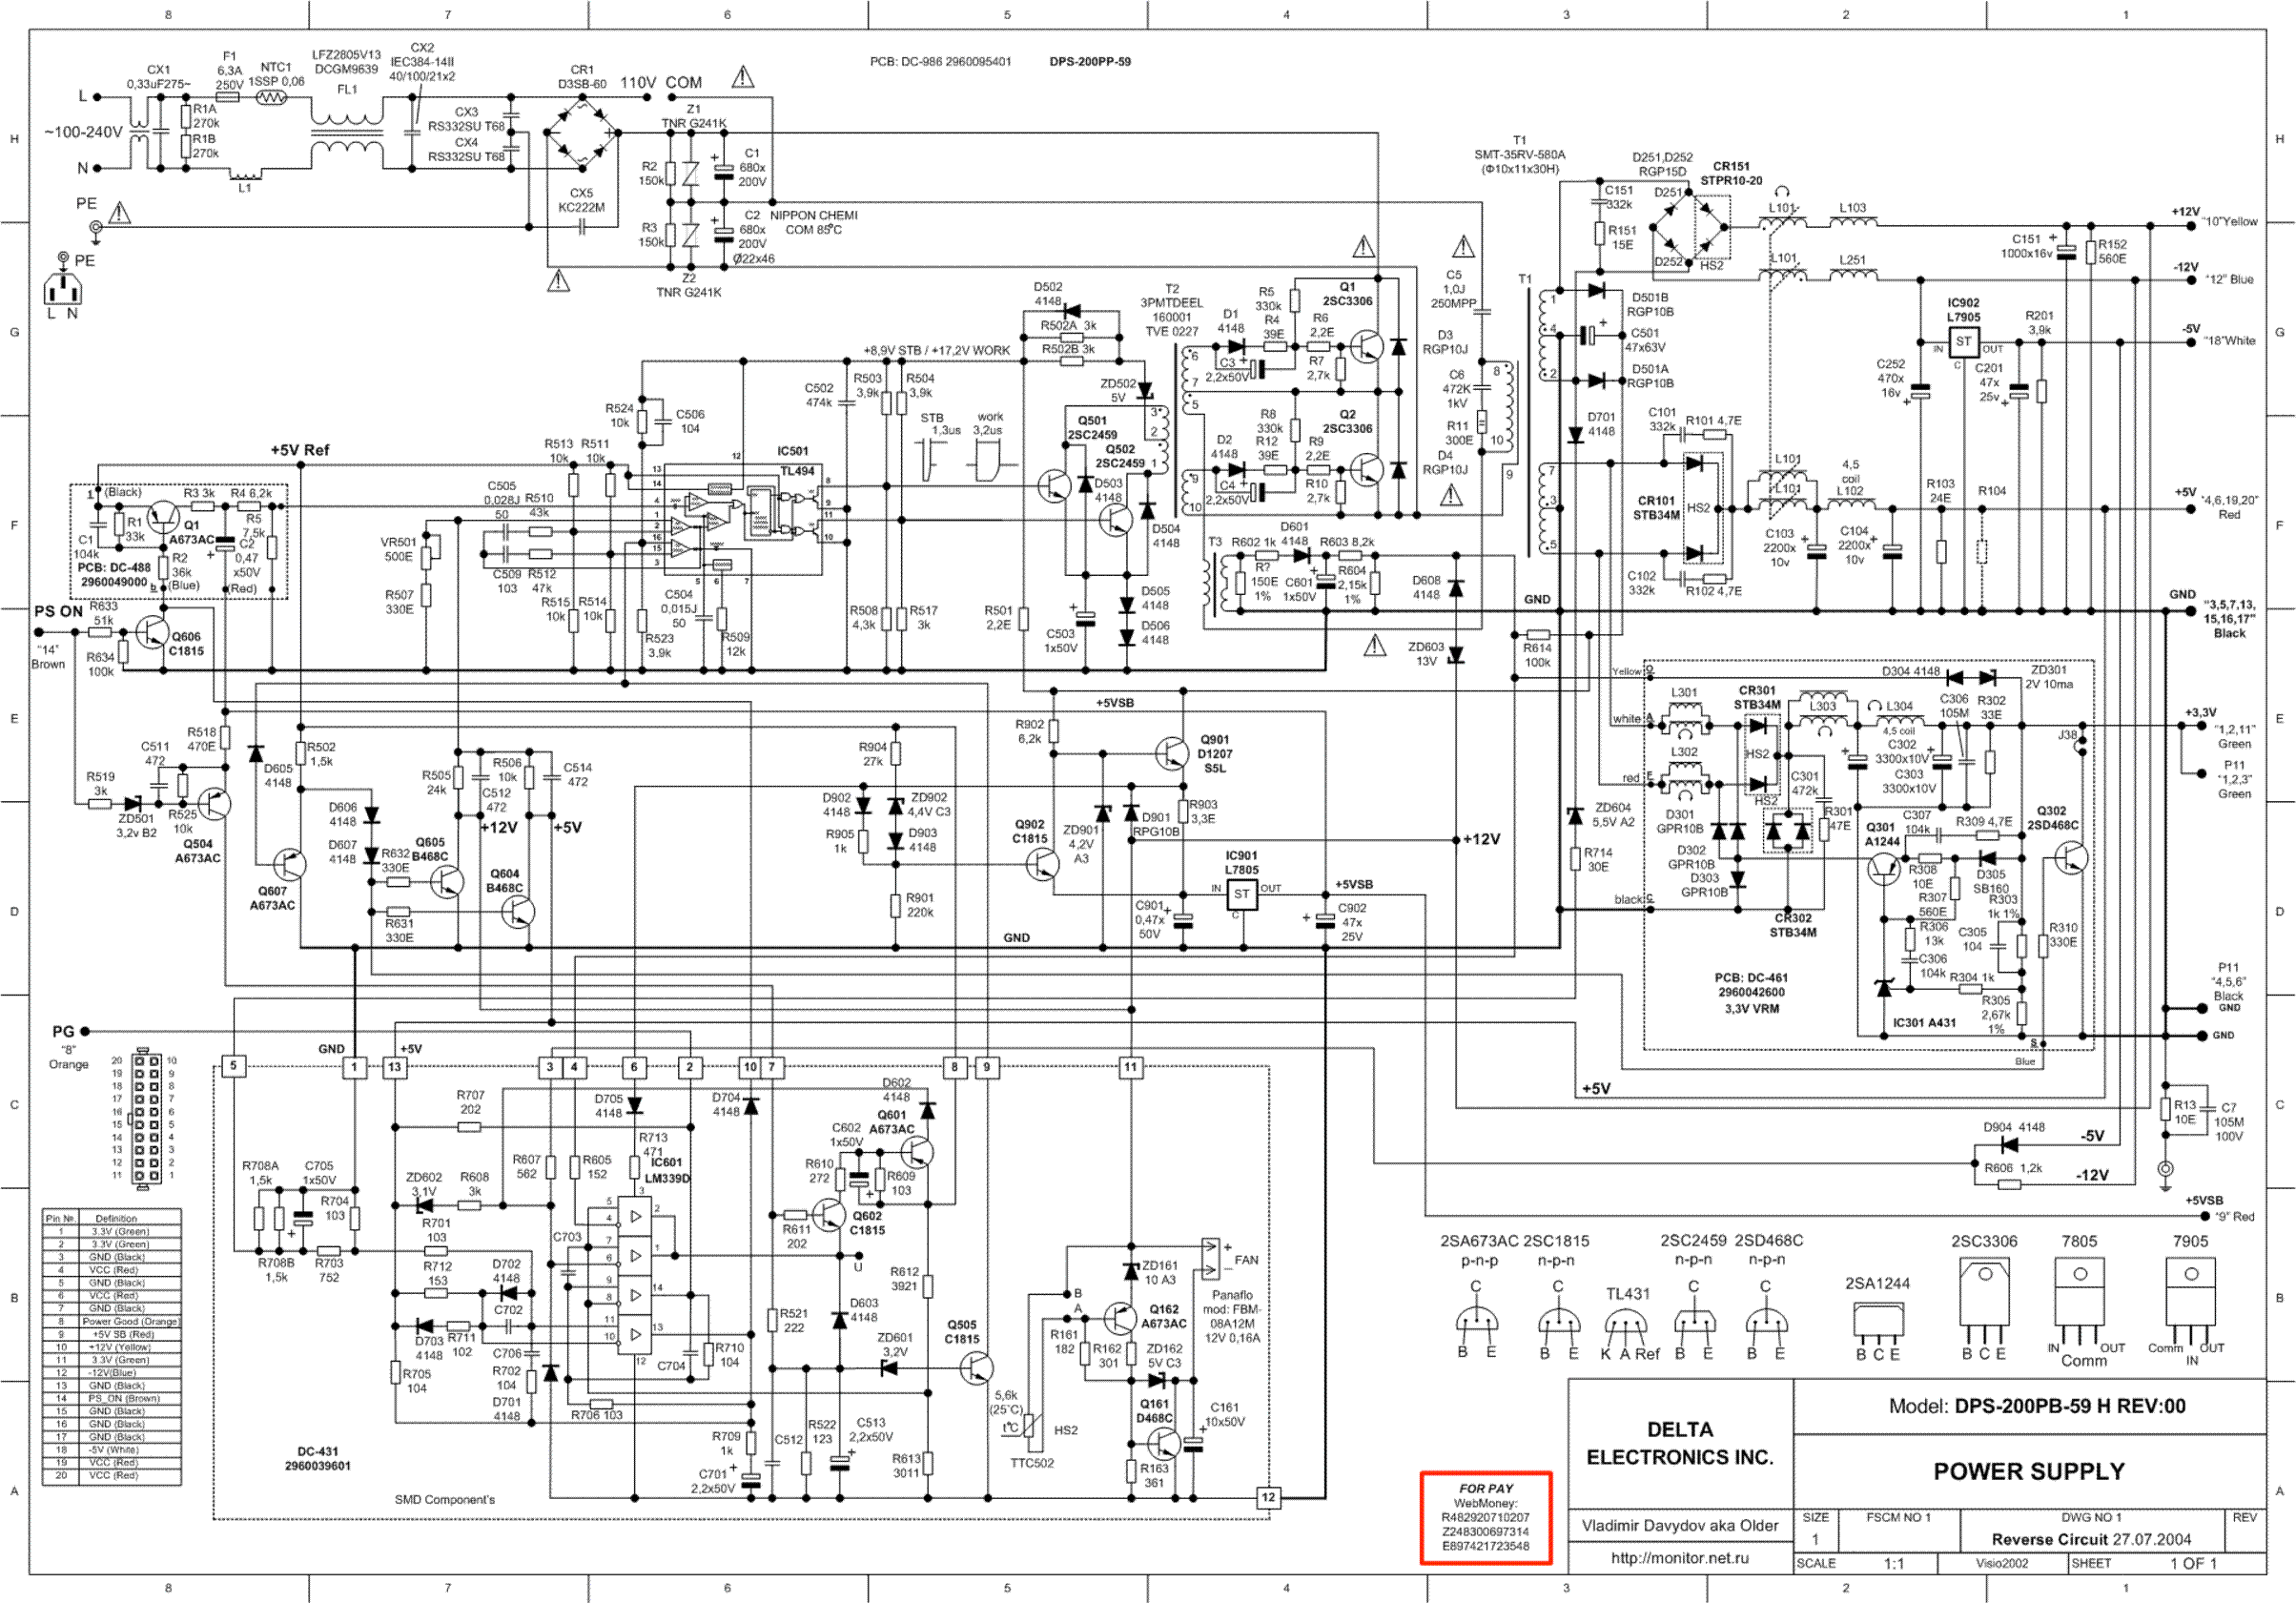 atx power supply schematic images